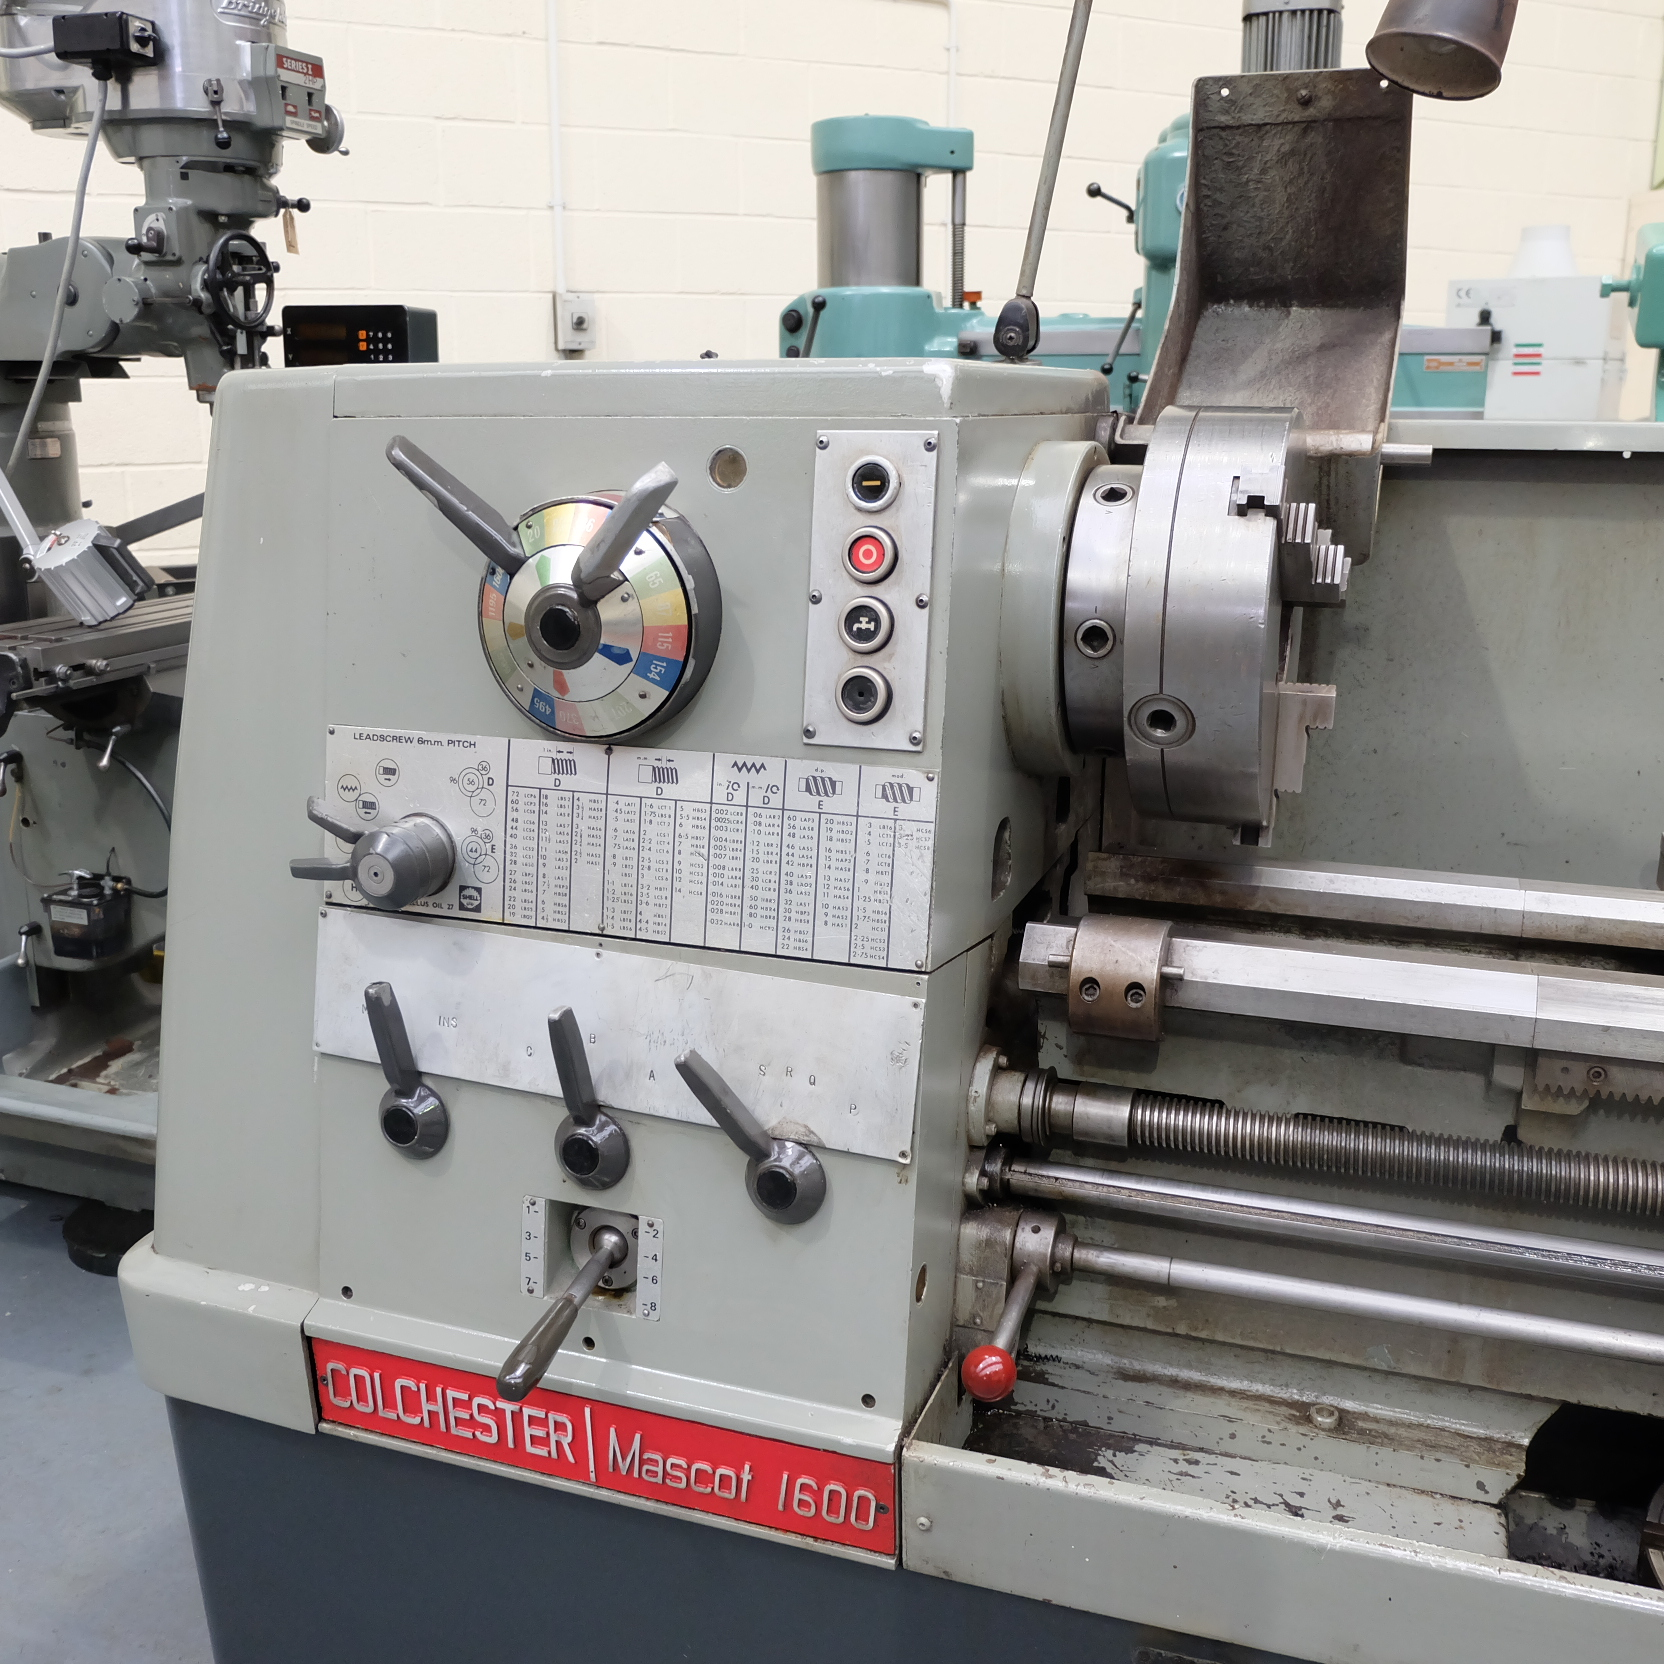 Colchester Mascot 1600 Gap Bed Centre Lathe. - Image 2 of 10